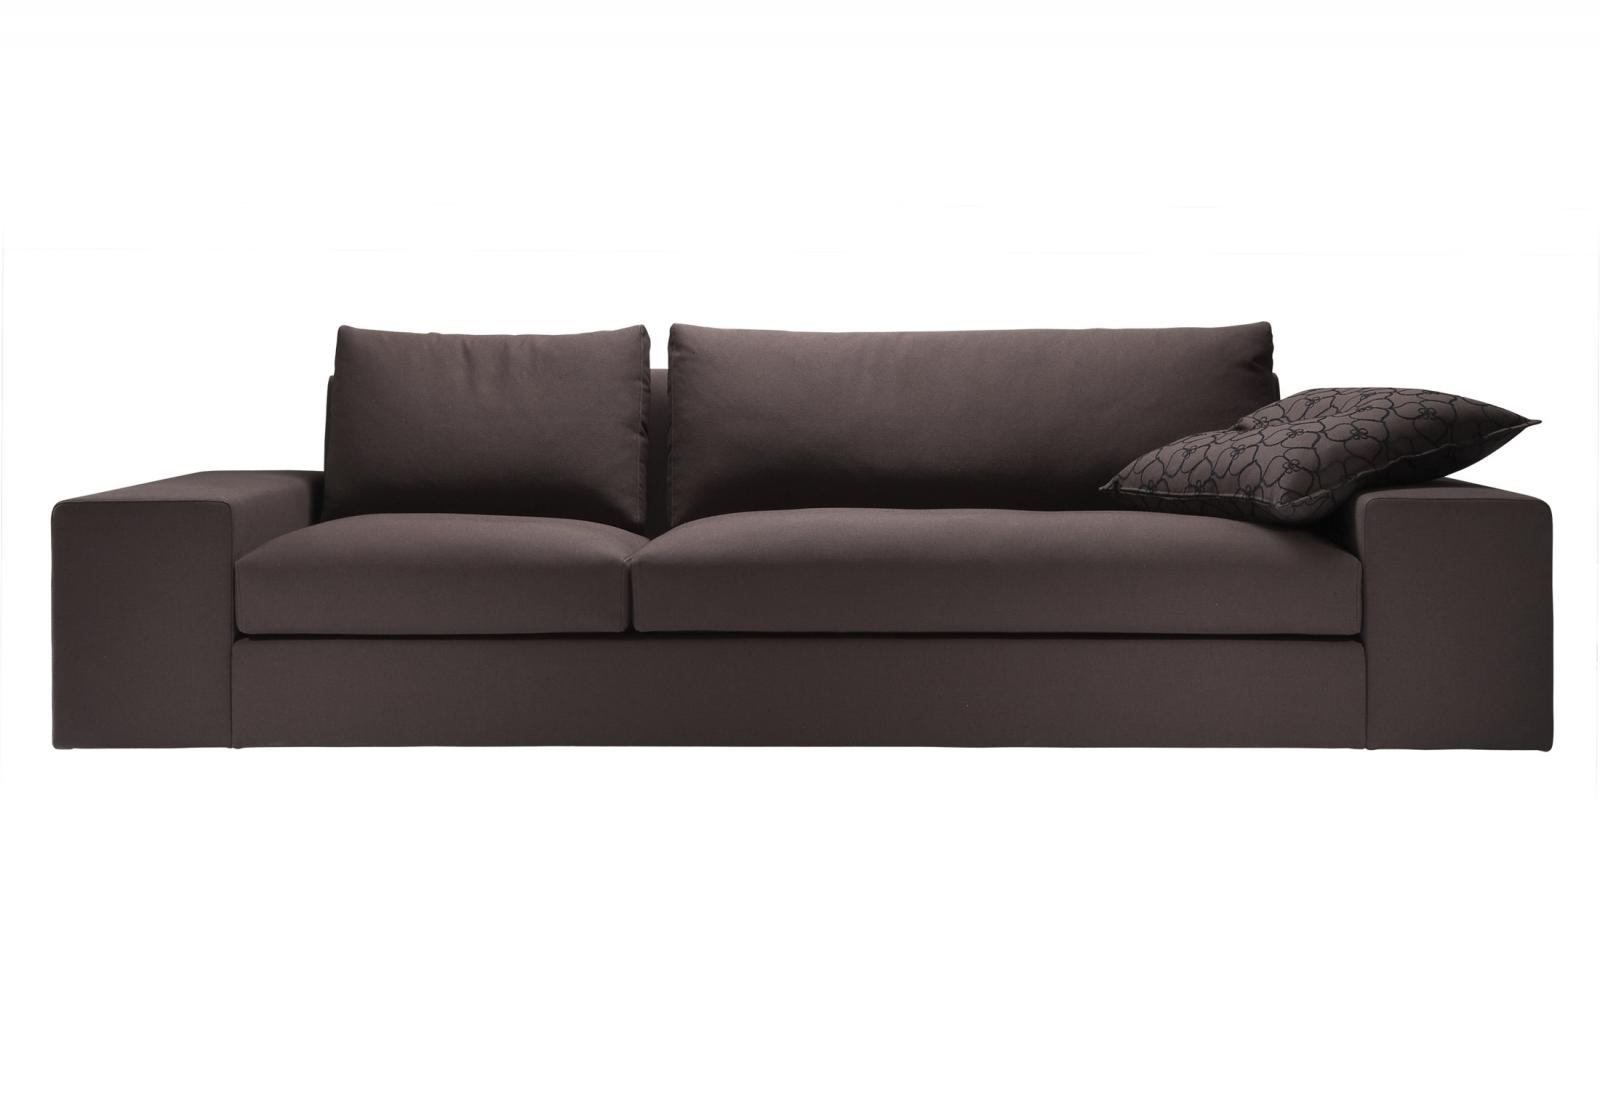 Exclusid Sofa